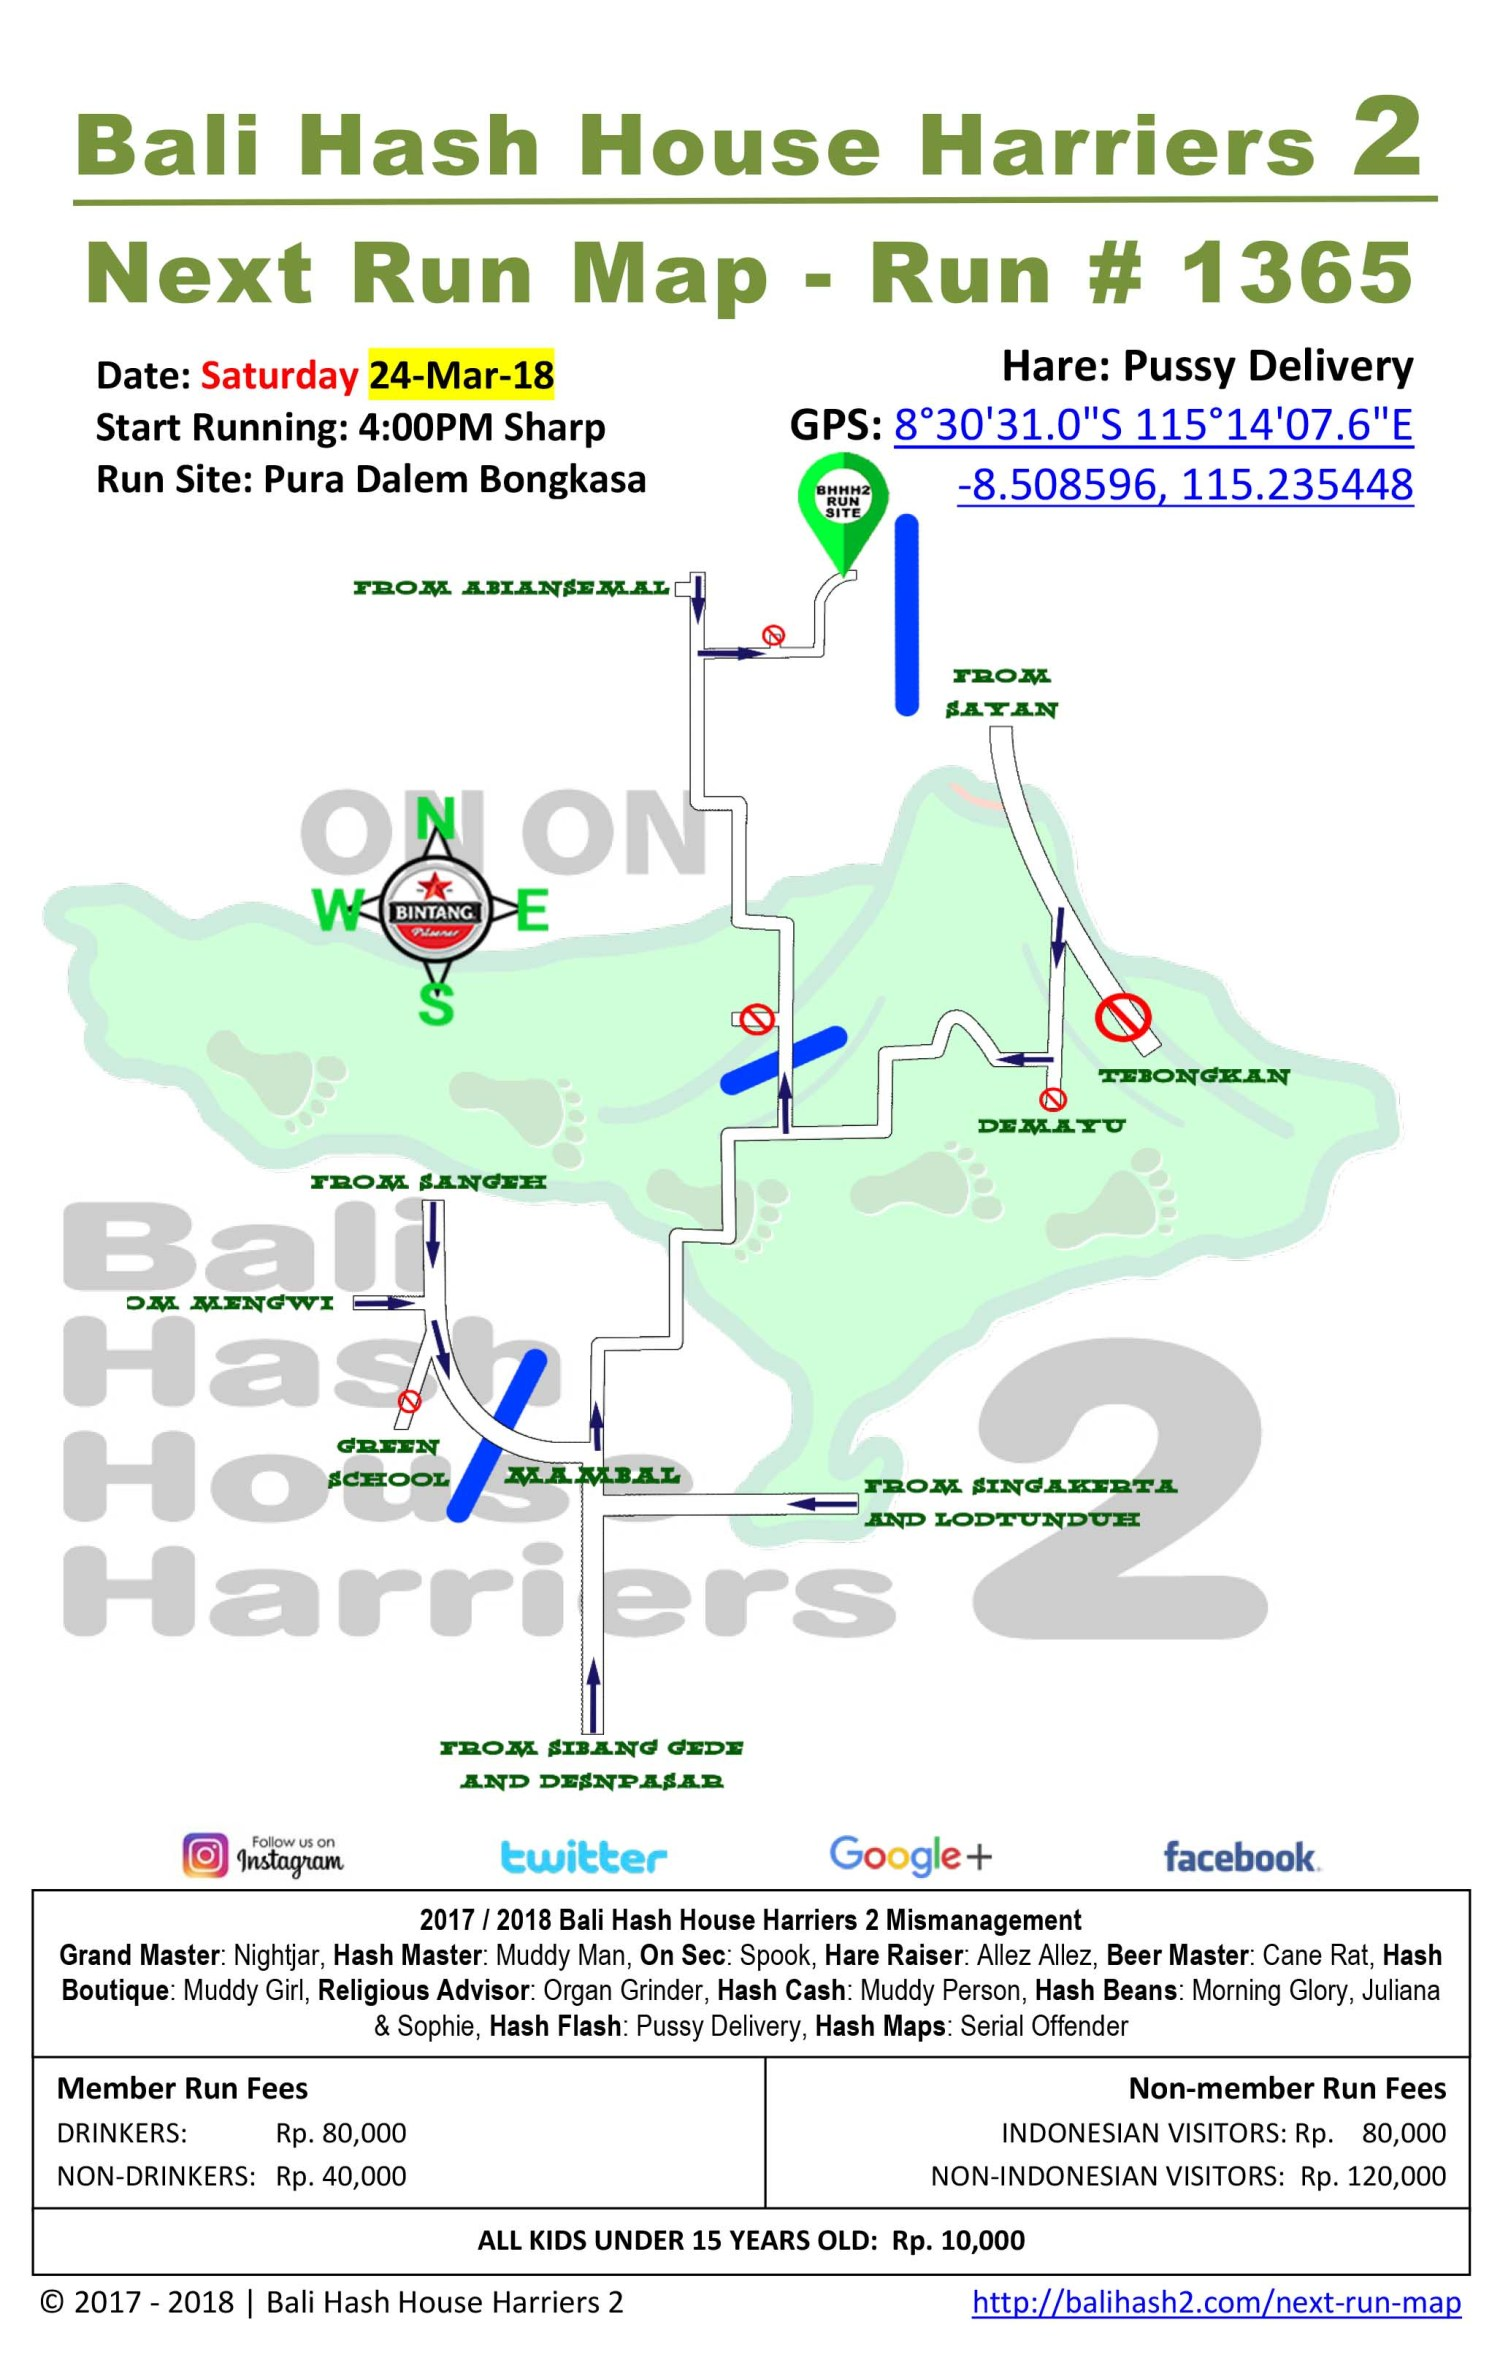 BHHH2 Next Run Map 1365 Pura Dalem Bongkasa Saturday 24-Mar-18